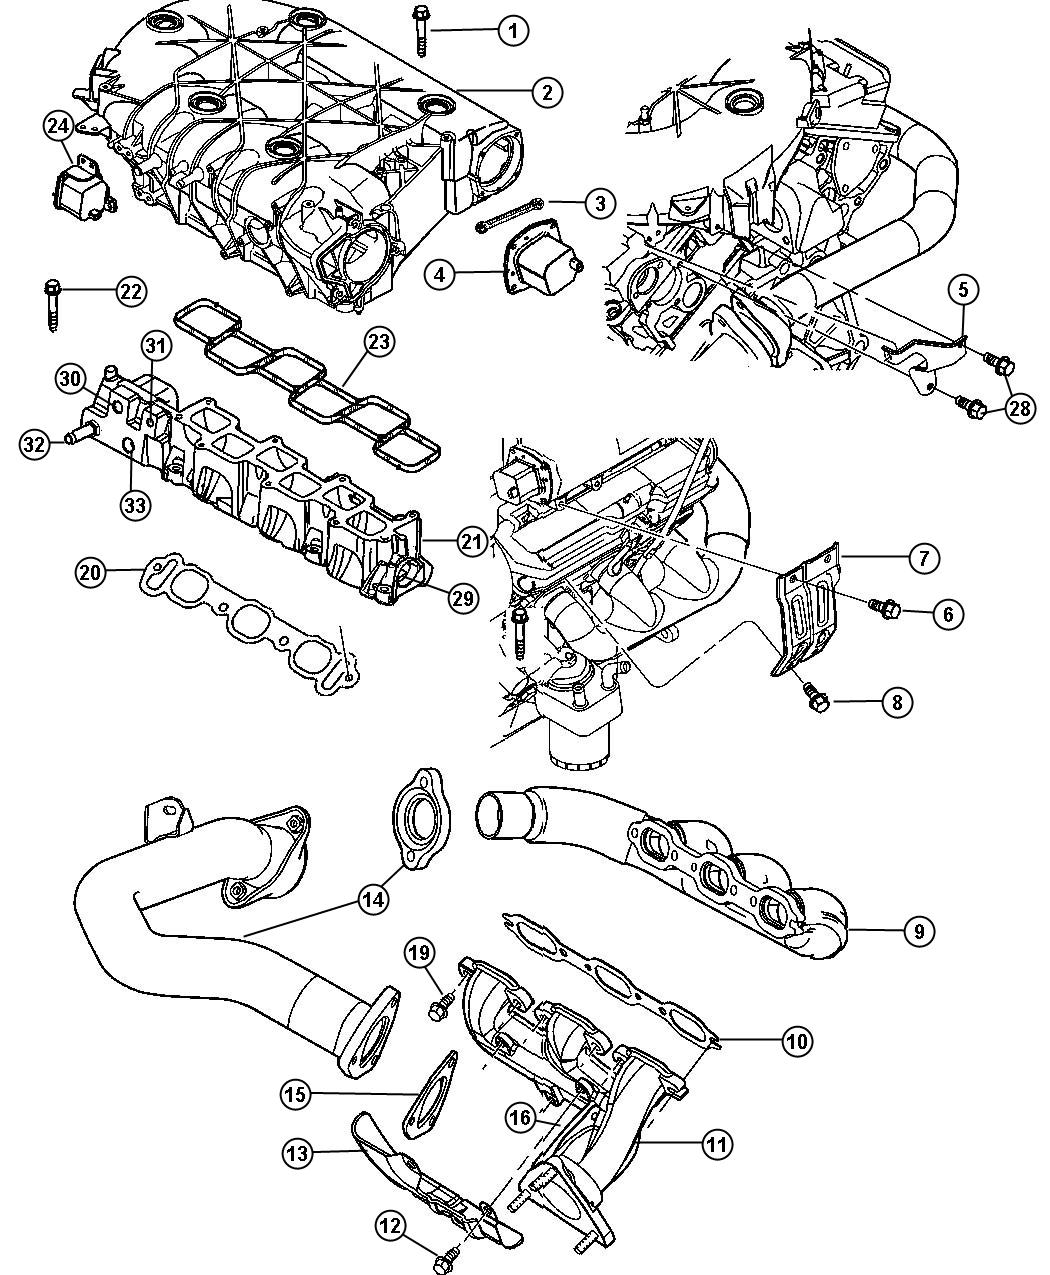 2004 chrysler pacifica engine diagram venn on plant and animal cells oem parts online factory